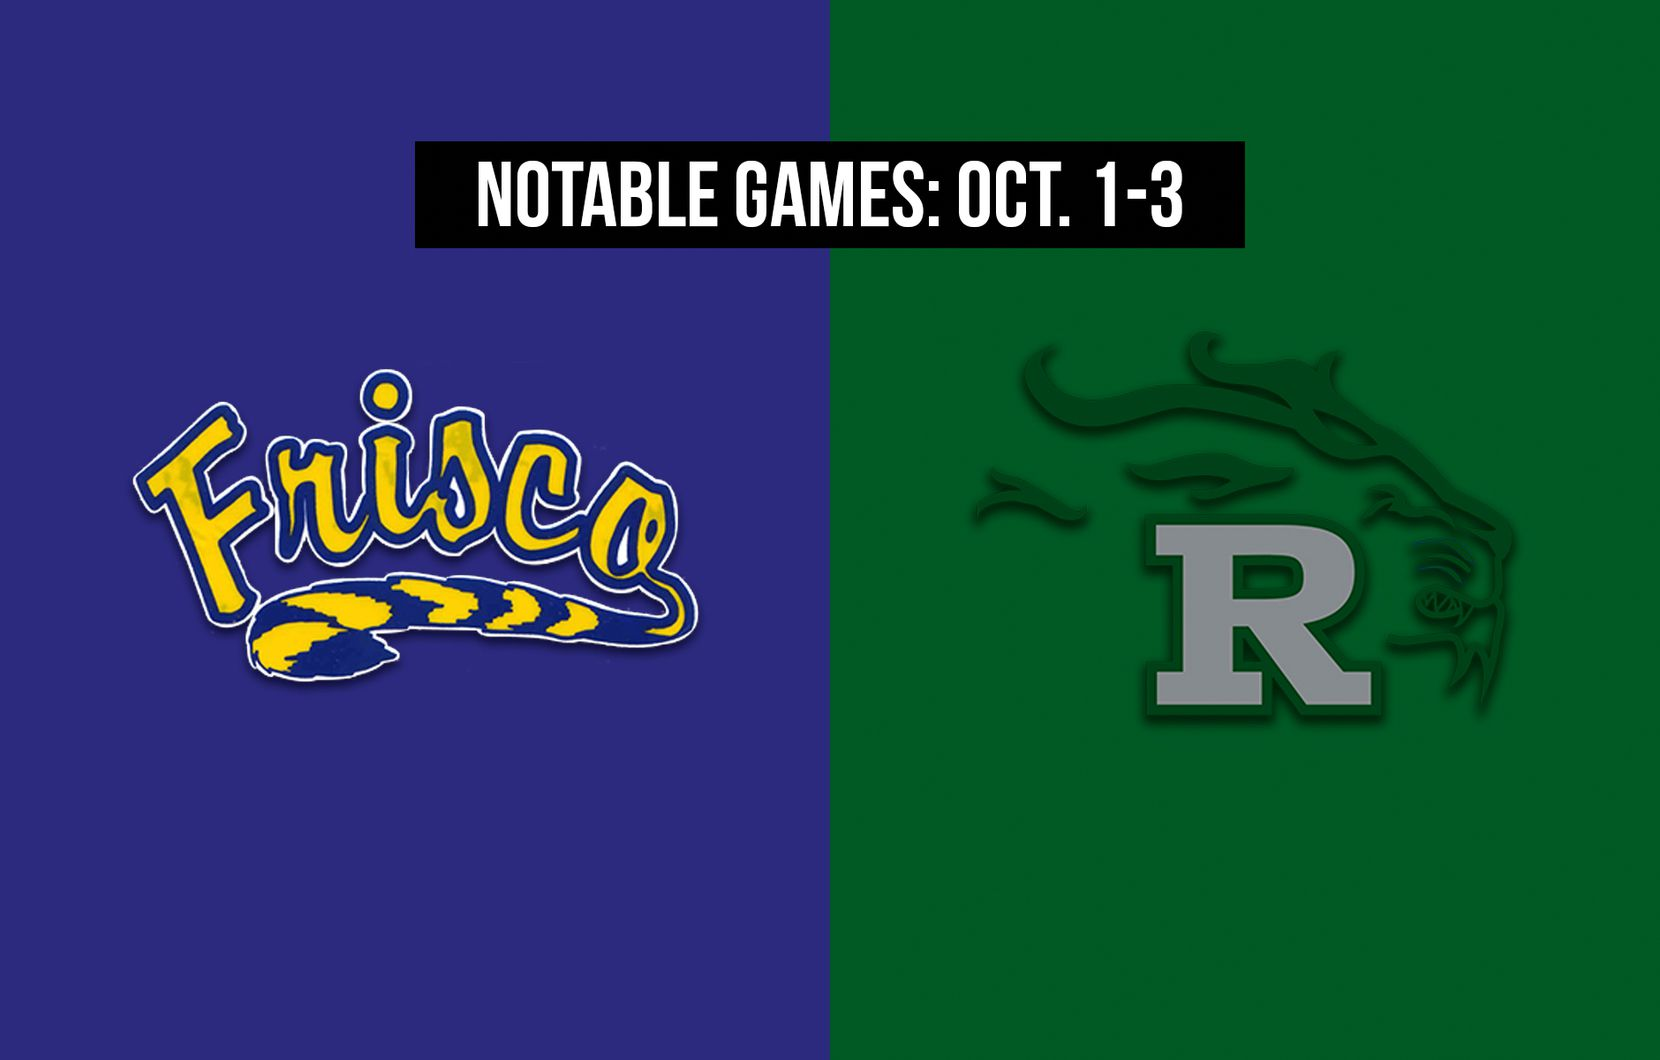 Notable games for the week of Oct. 1-3 of the 2020 season: Frisco vs. Frisco Reedy.